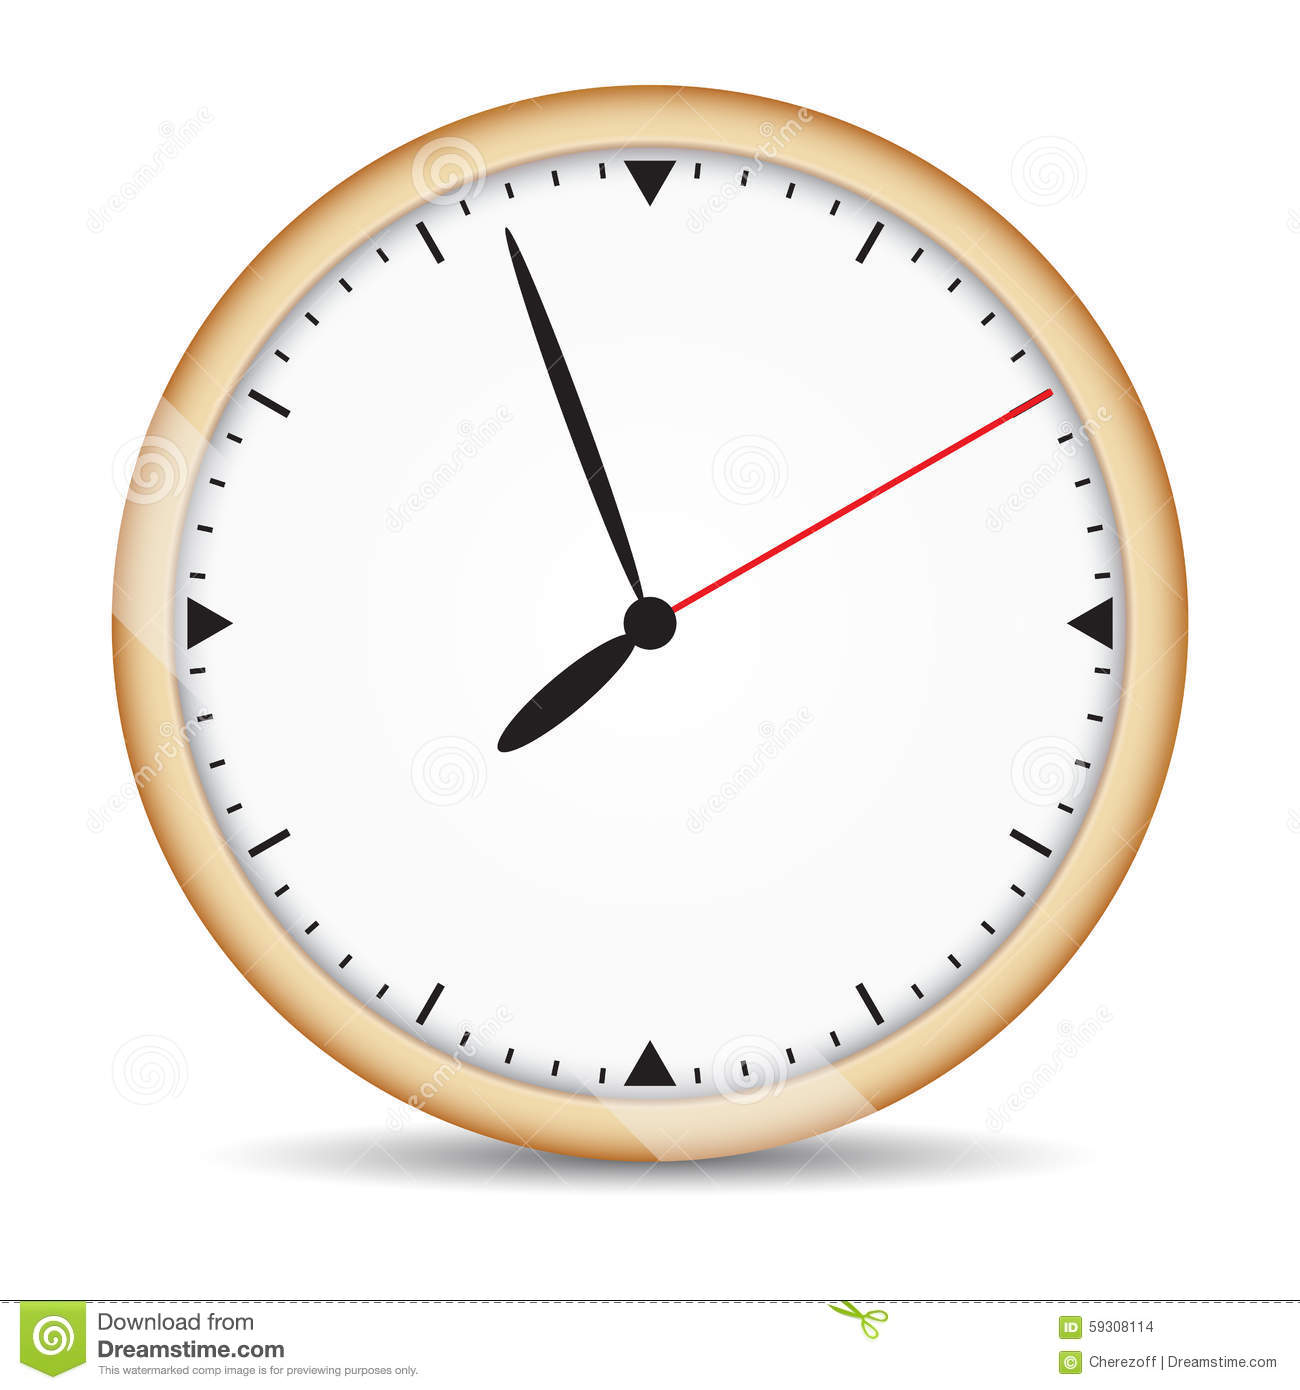 Round clock with brown frame and red second hand stock vector round clock with brown frame and red second hand amipublicfo Image collections